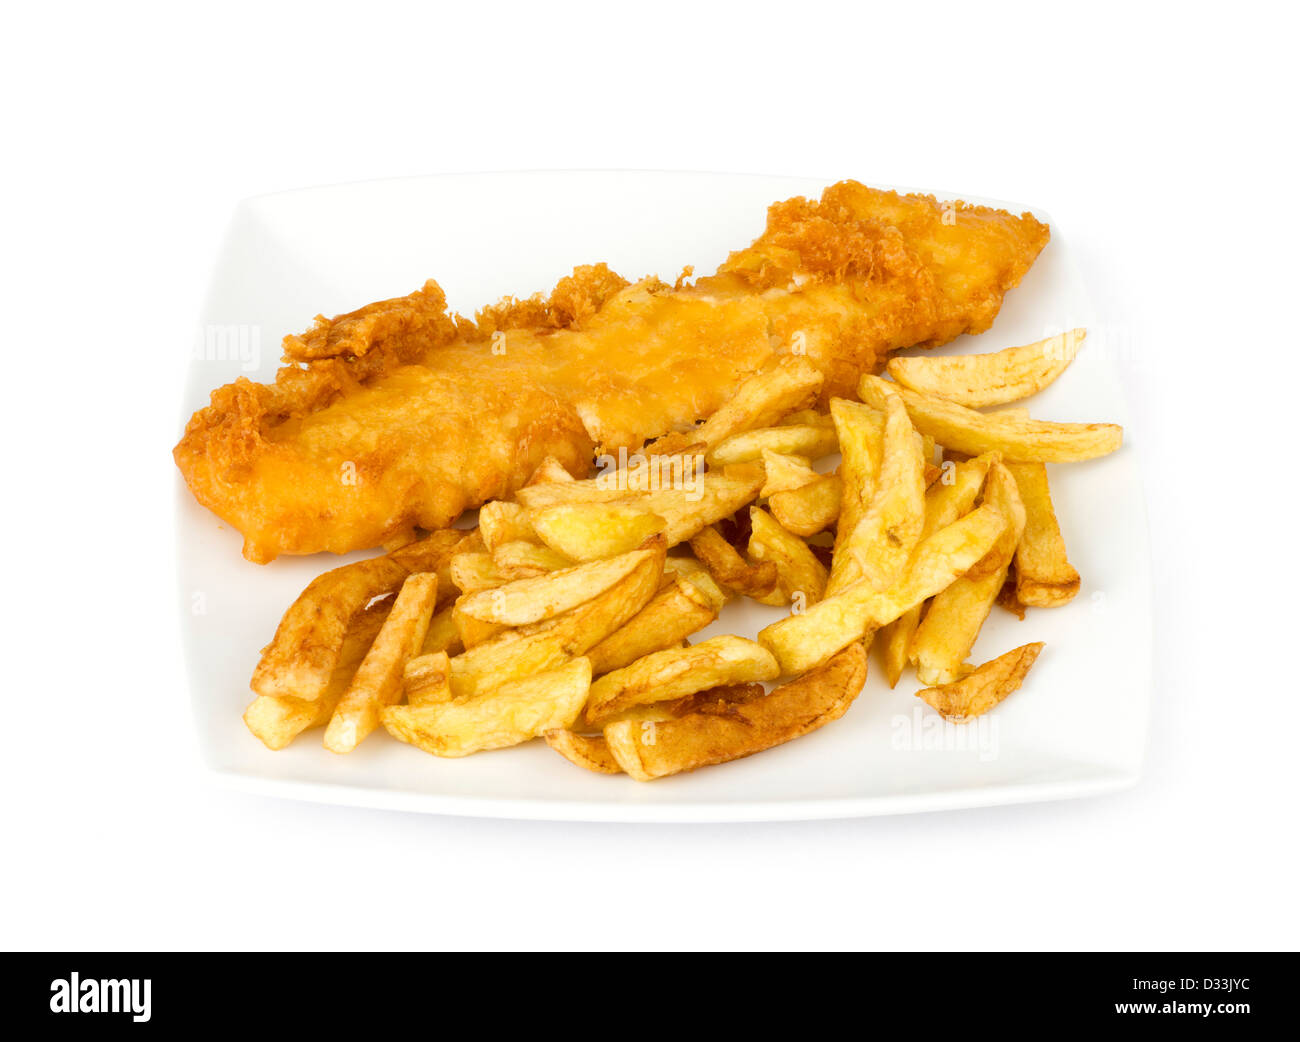 Plate of traditional take-away fish and chips - Stock Image